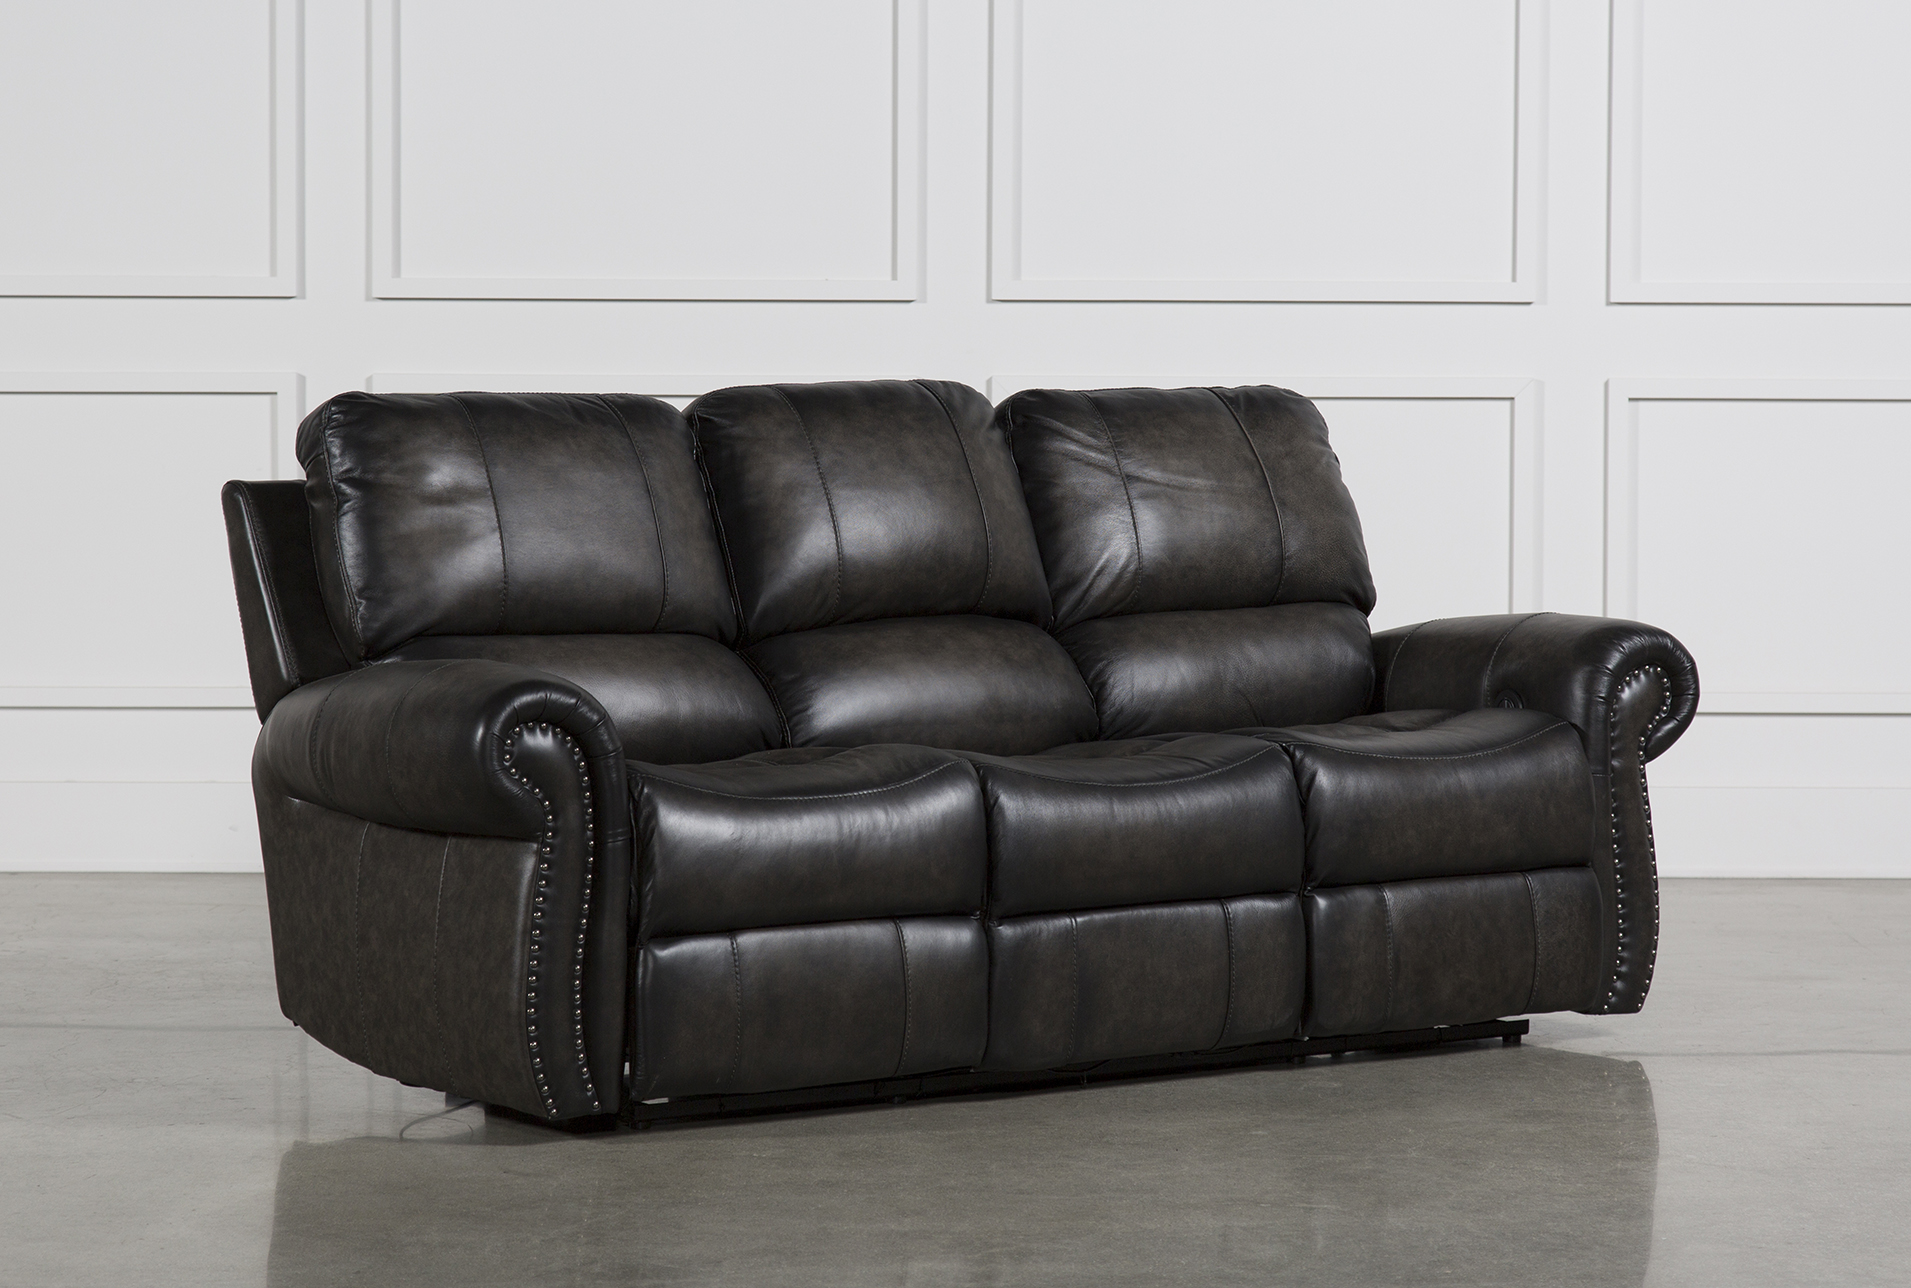 Delicieux Thad Leather Dual Power Reclining Sofa   360